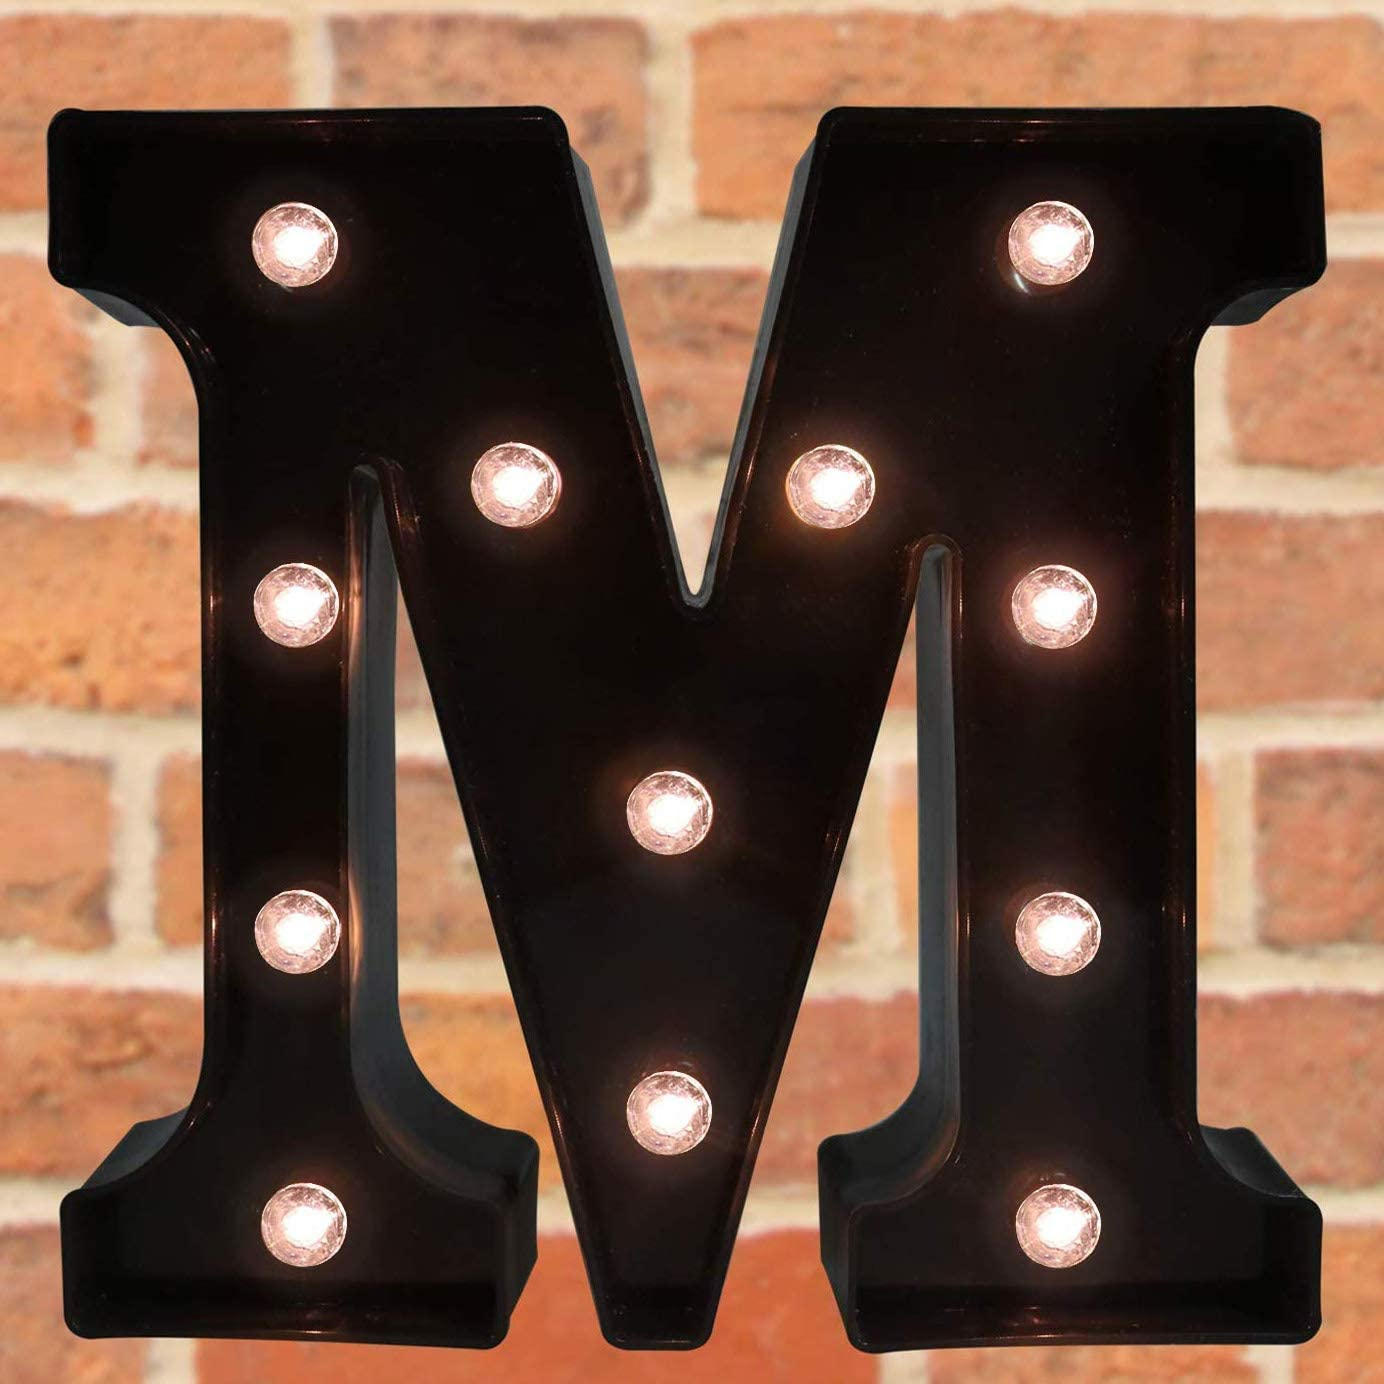 Pooqla Decorative LED Illuminated Letter Marquee Sign - Alphabet Marquee Letters with Lights for Wedding Birthday Party Christmas Night Light Lamp Home Bar Decoration M, Black